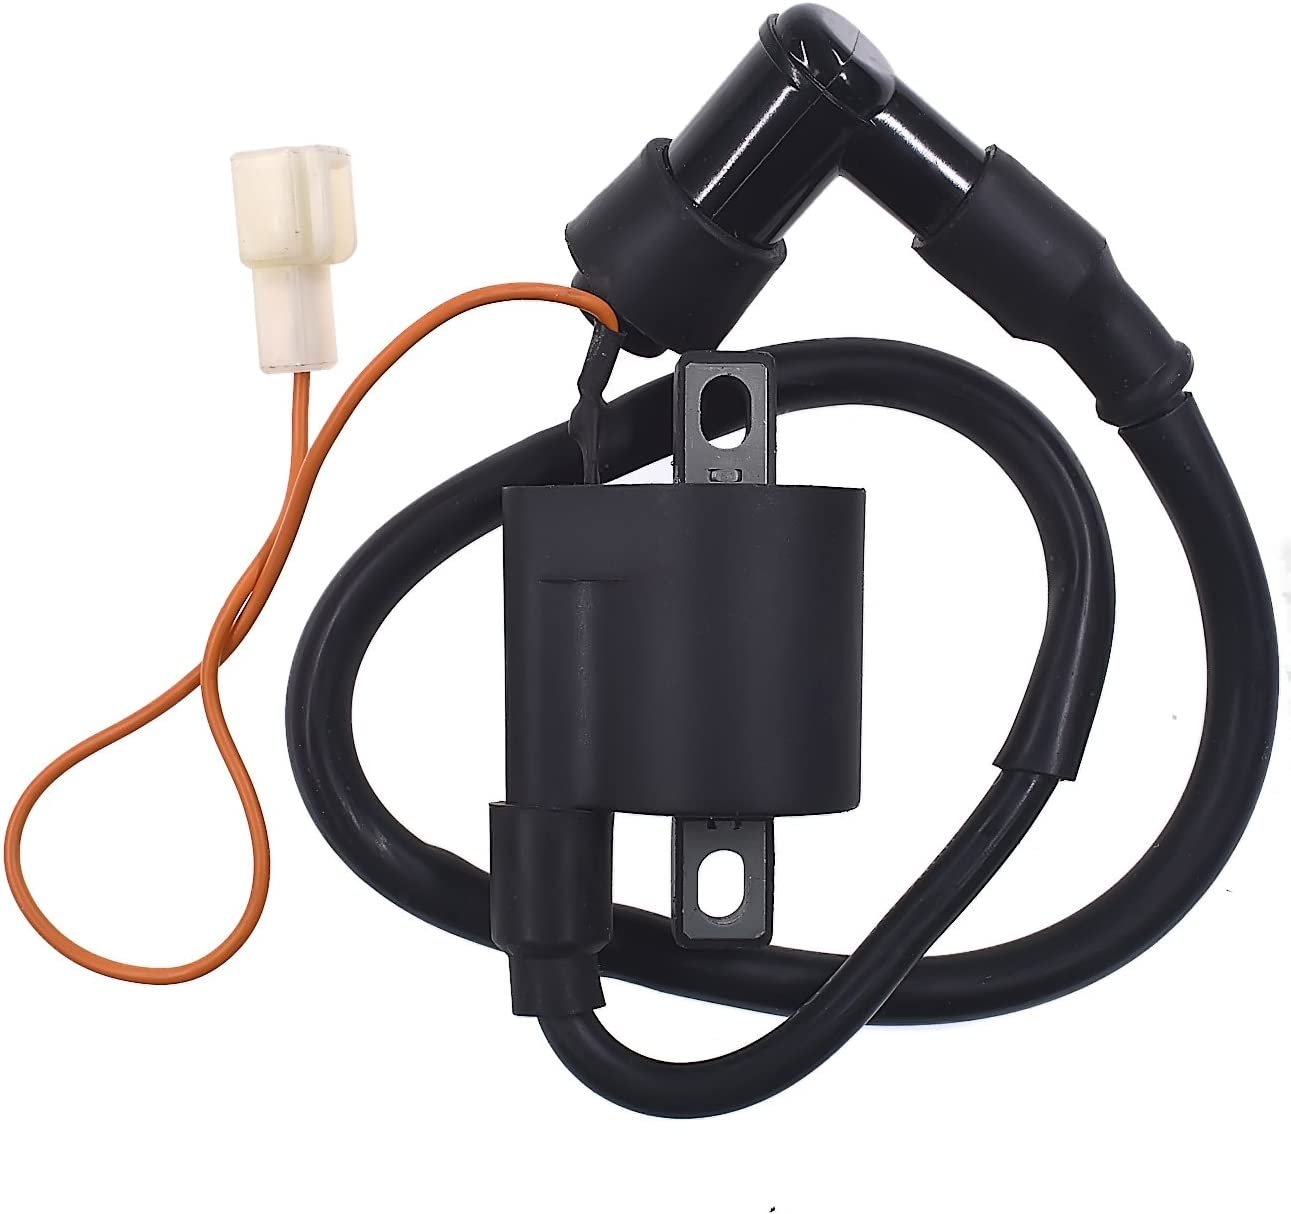 JRL Ignition Coil CDI Bike Parts Spark for Yamaha PW80 PY80 Peewee